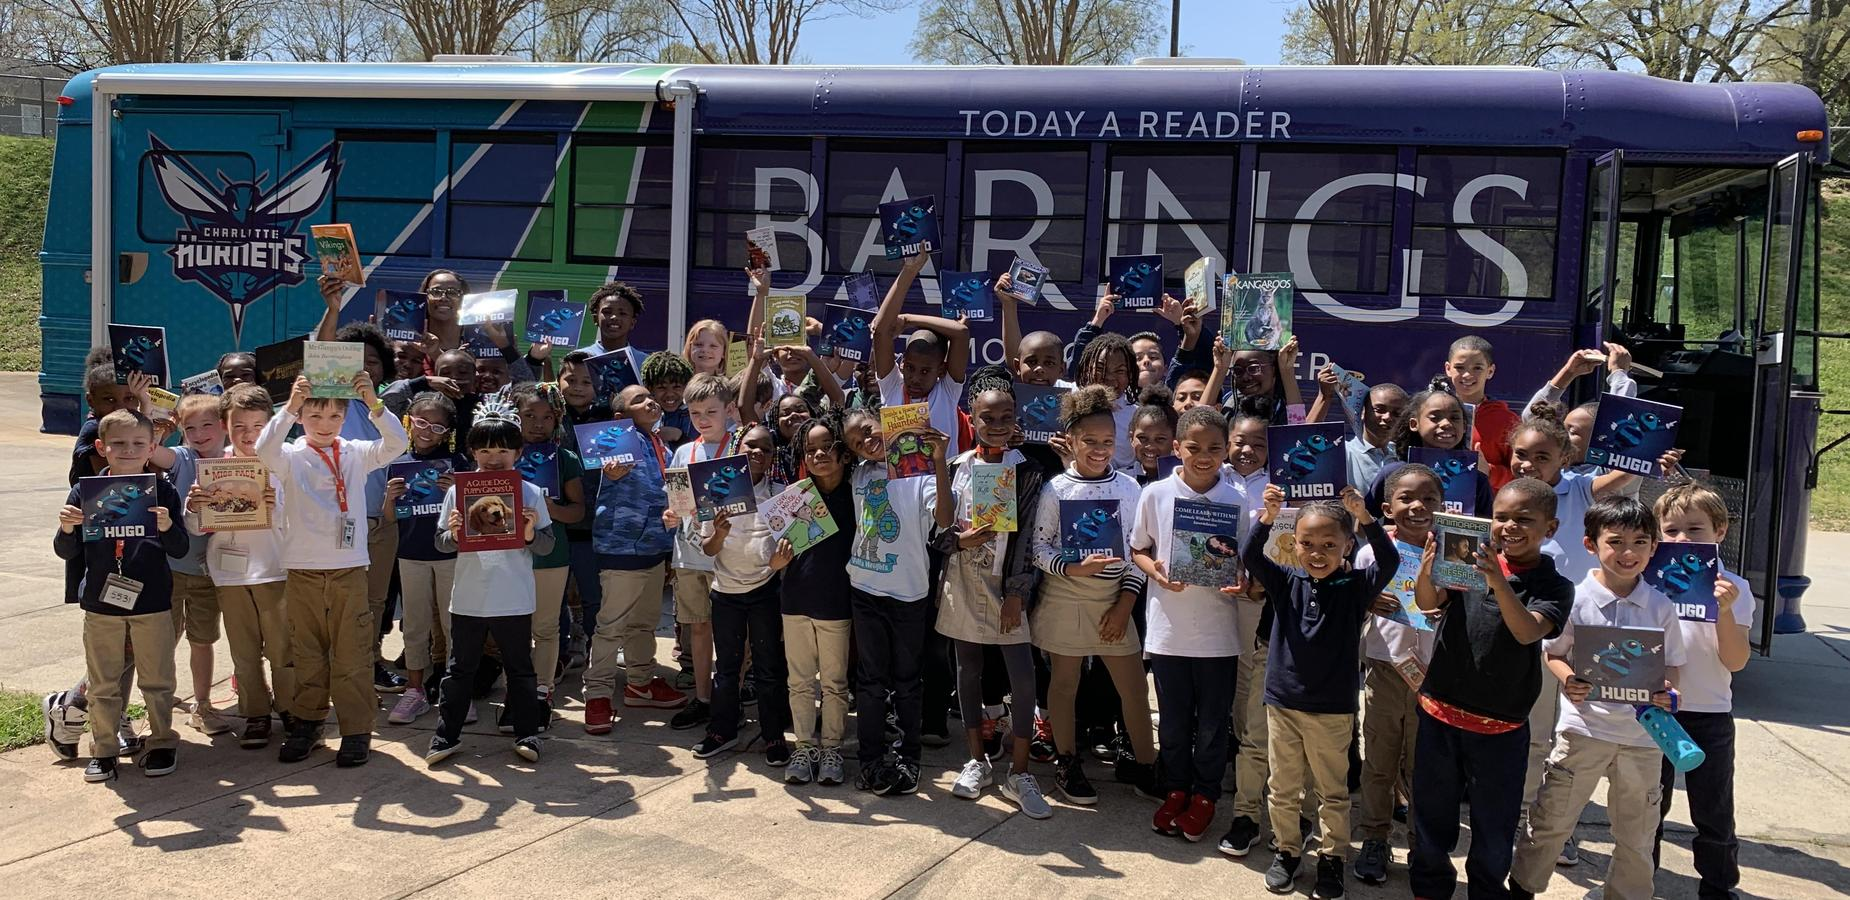 Students standing in front of Barings Book Bus holding books.